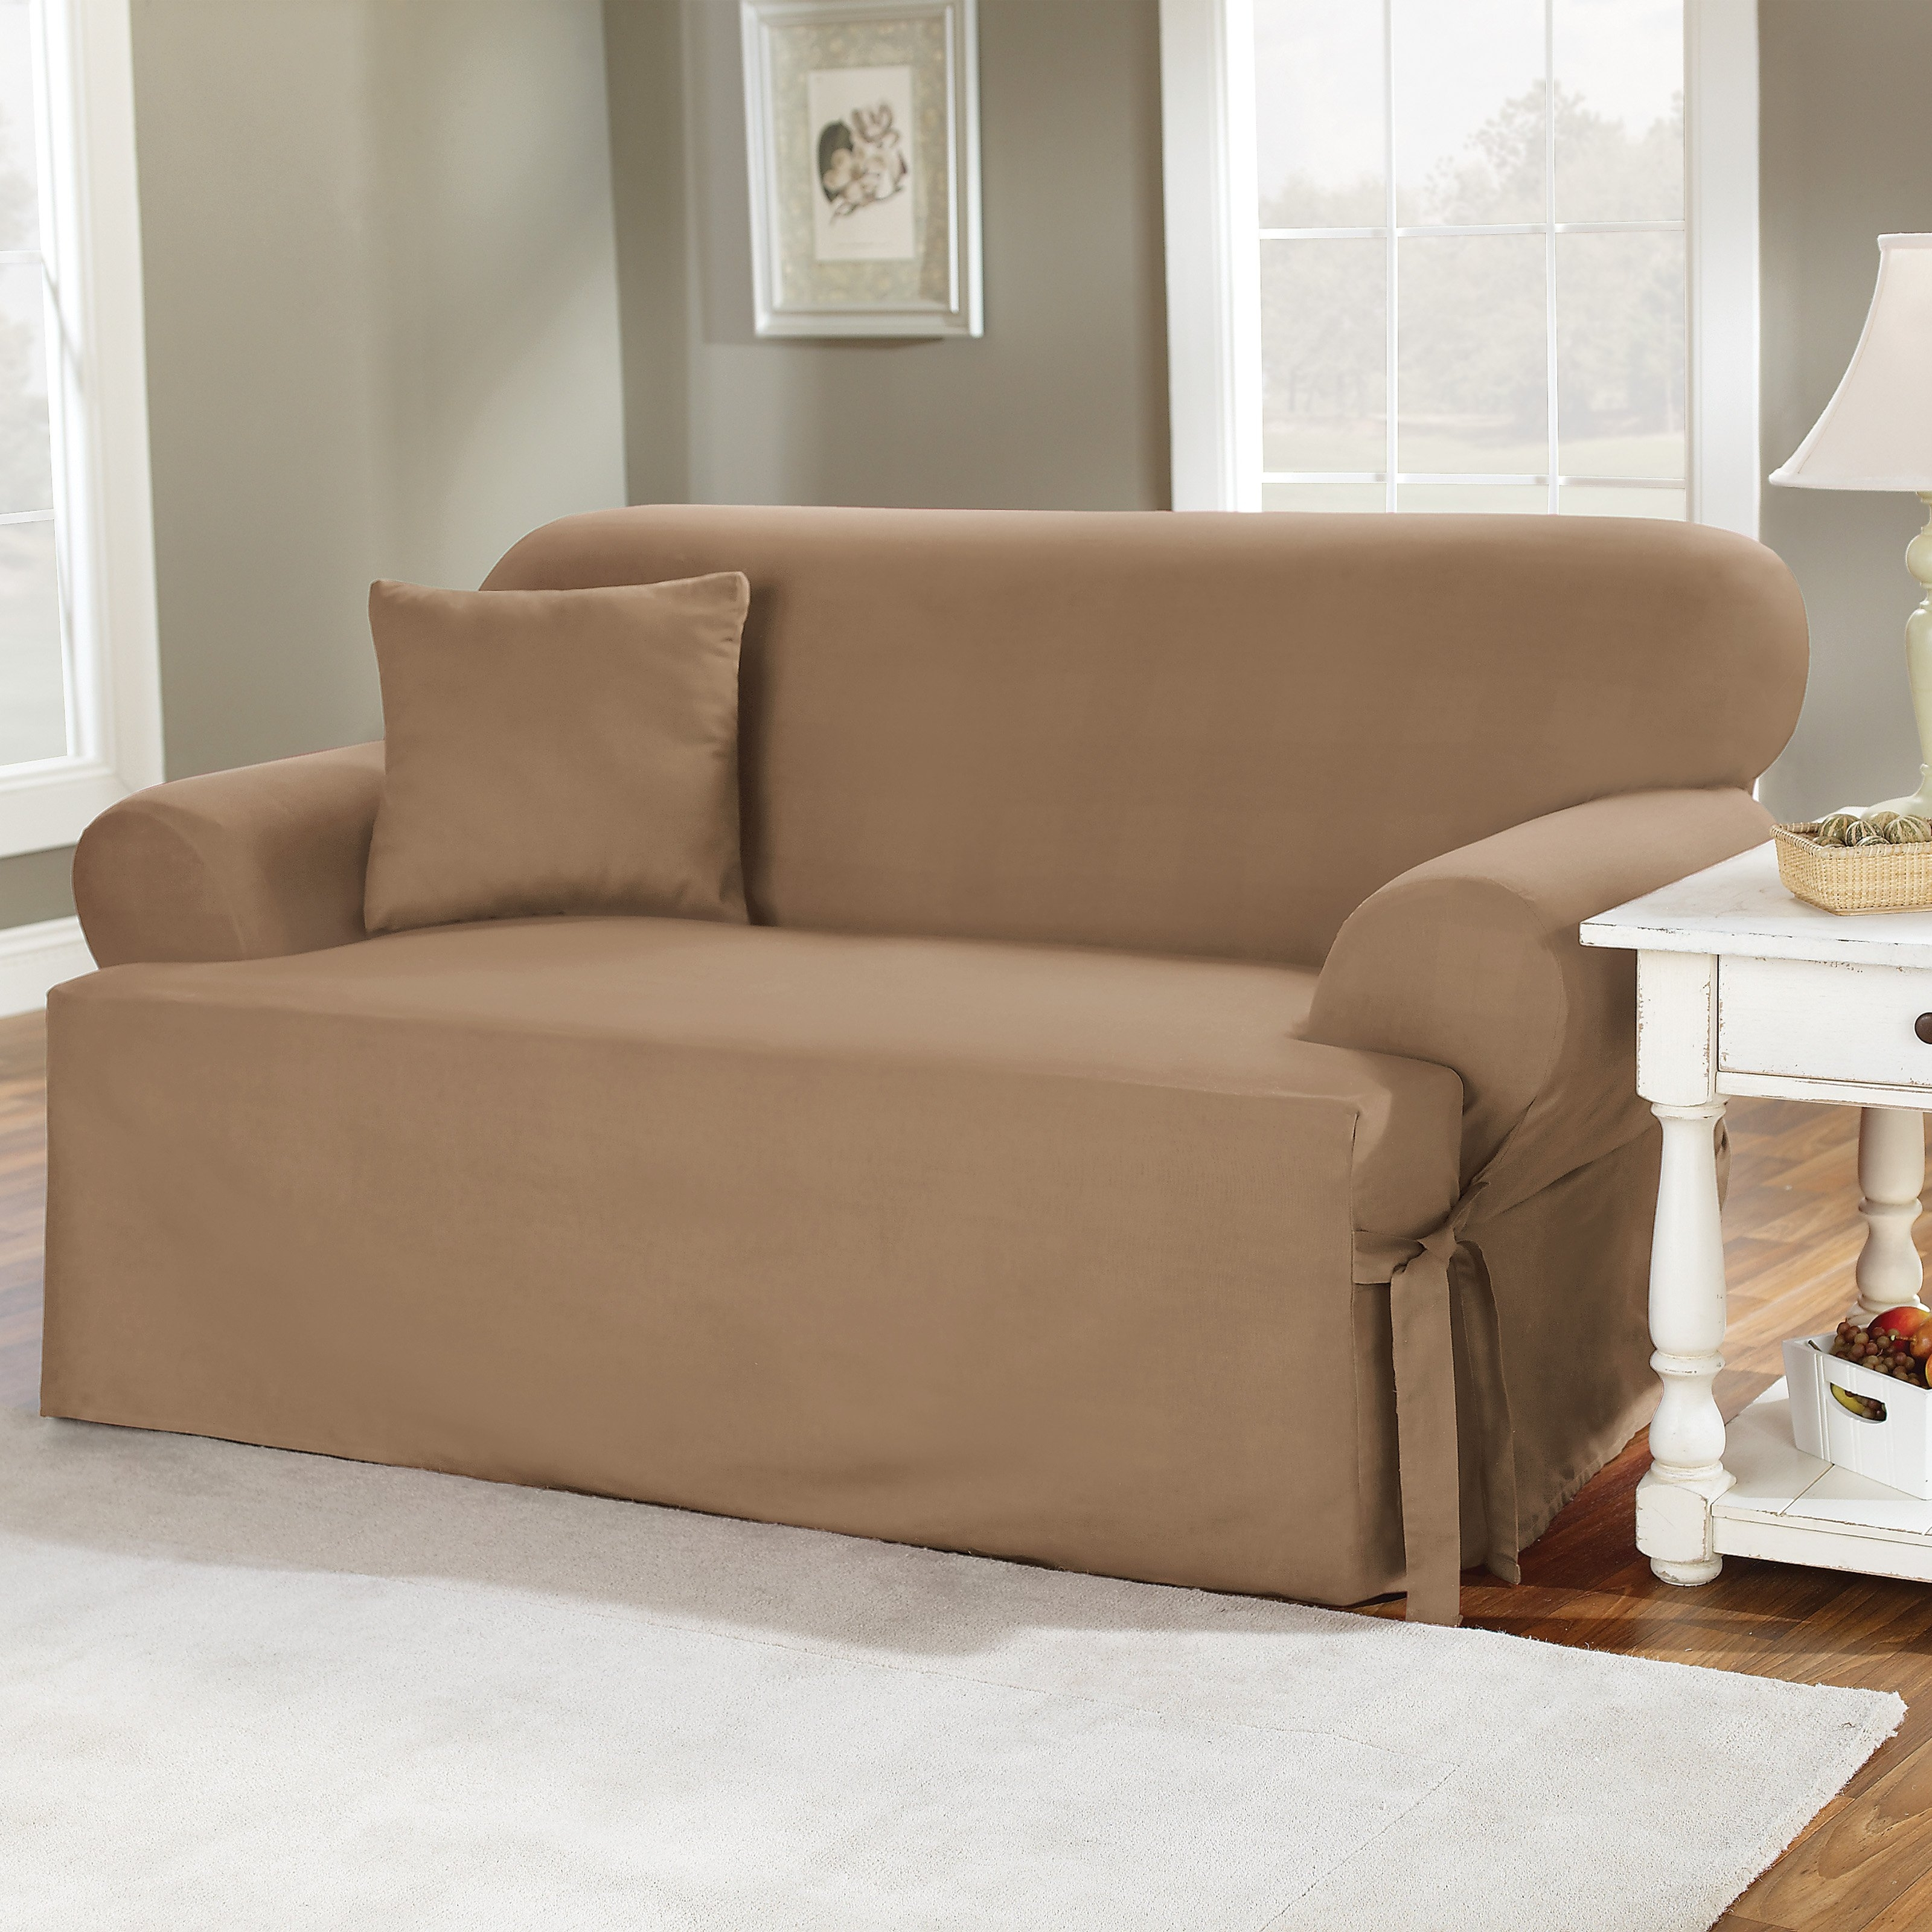 Slipcovers Sofas Throughout Best And Newest Sure Fit Cotton Duck T Cushion Sofa Slipcover (View 10 of 15)